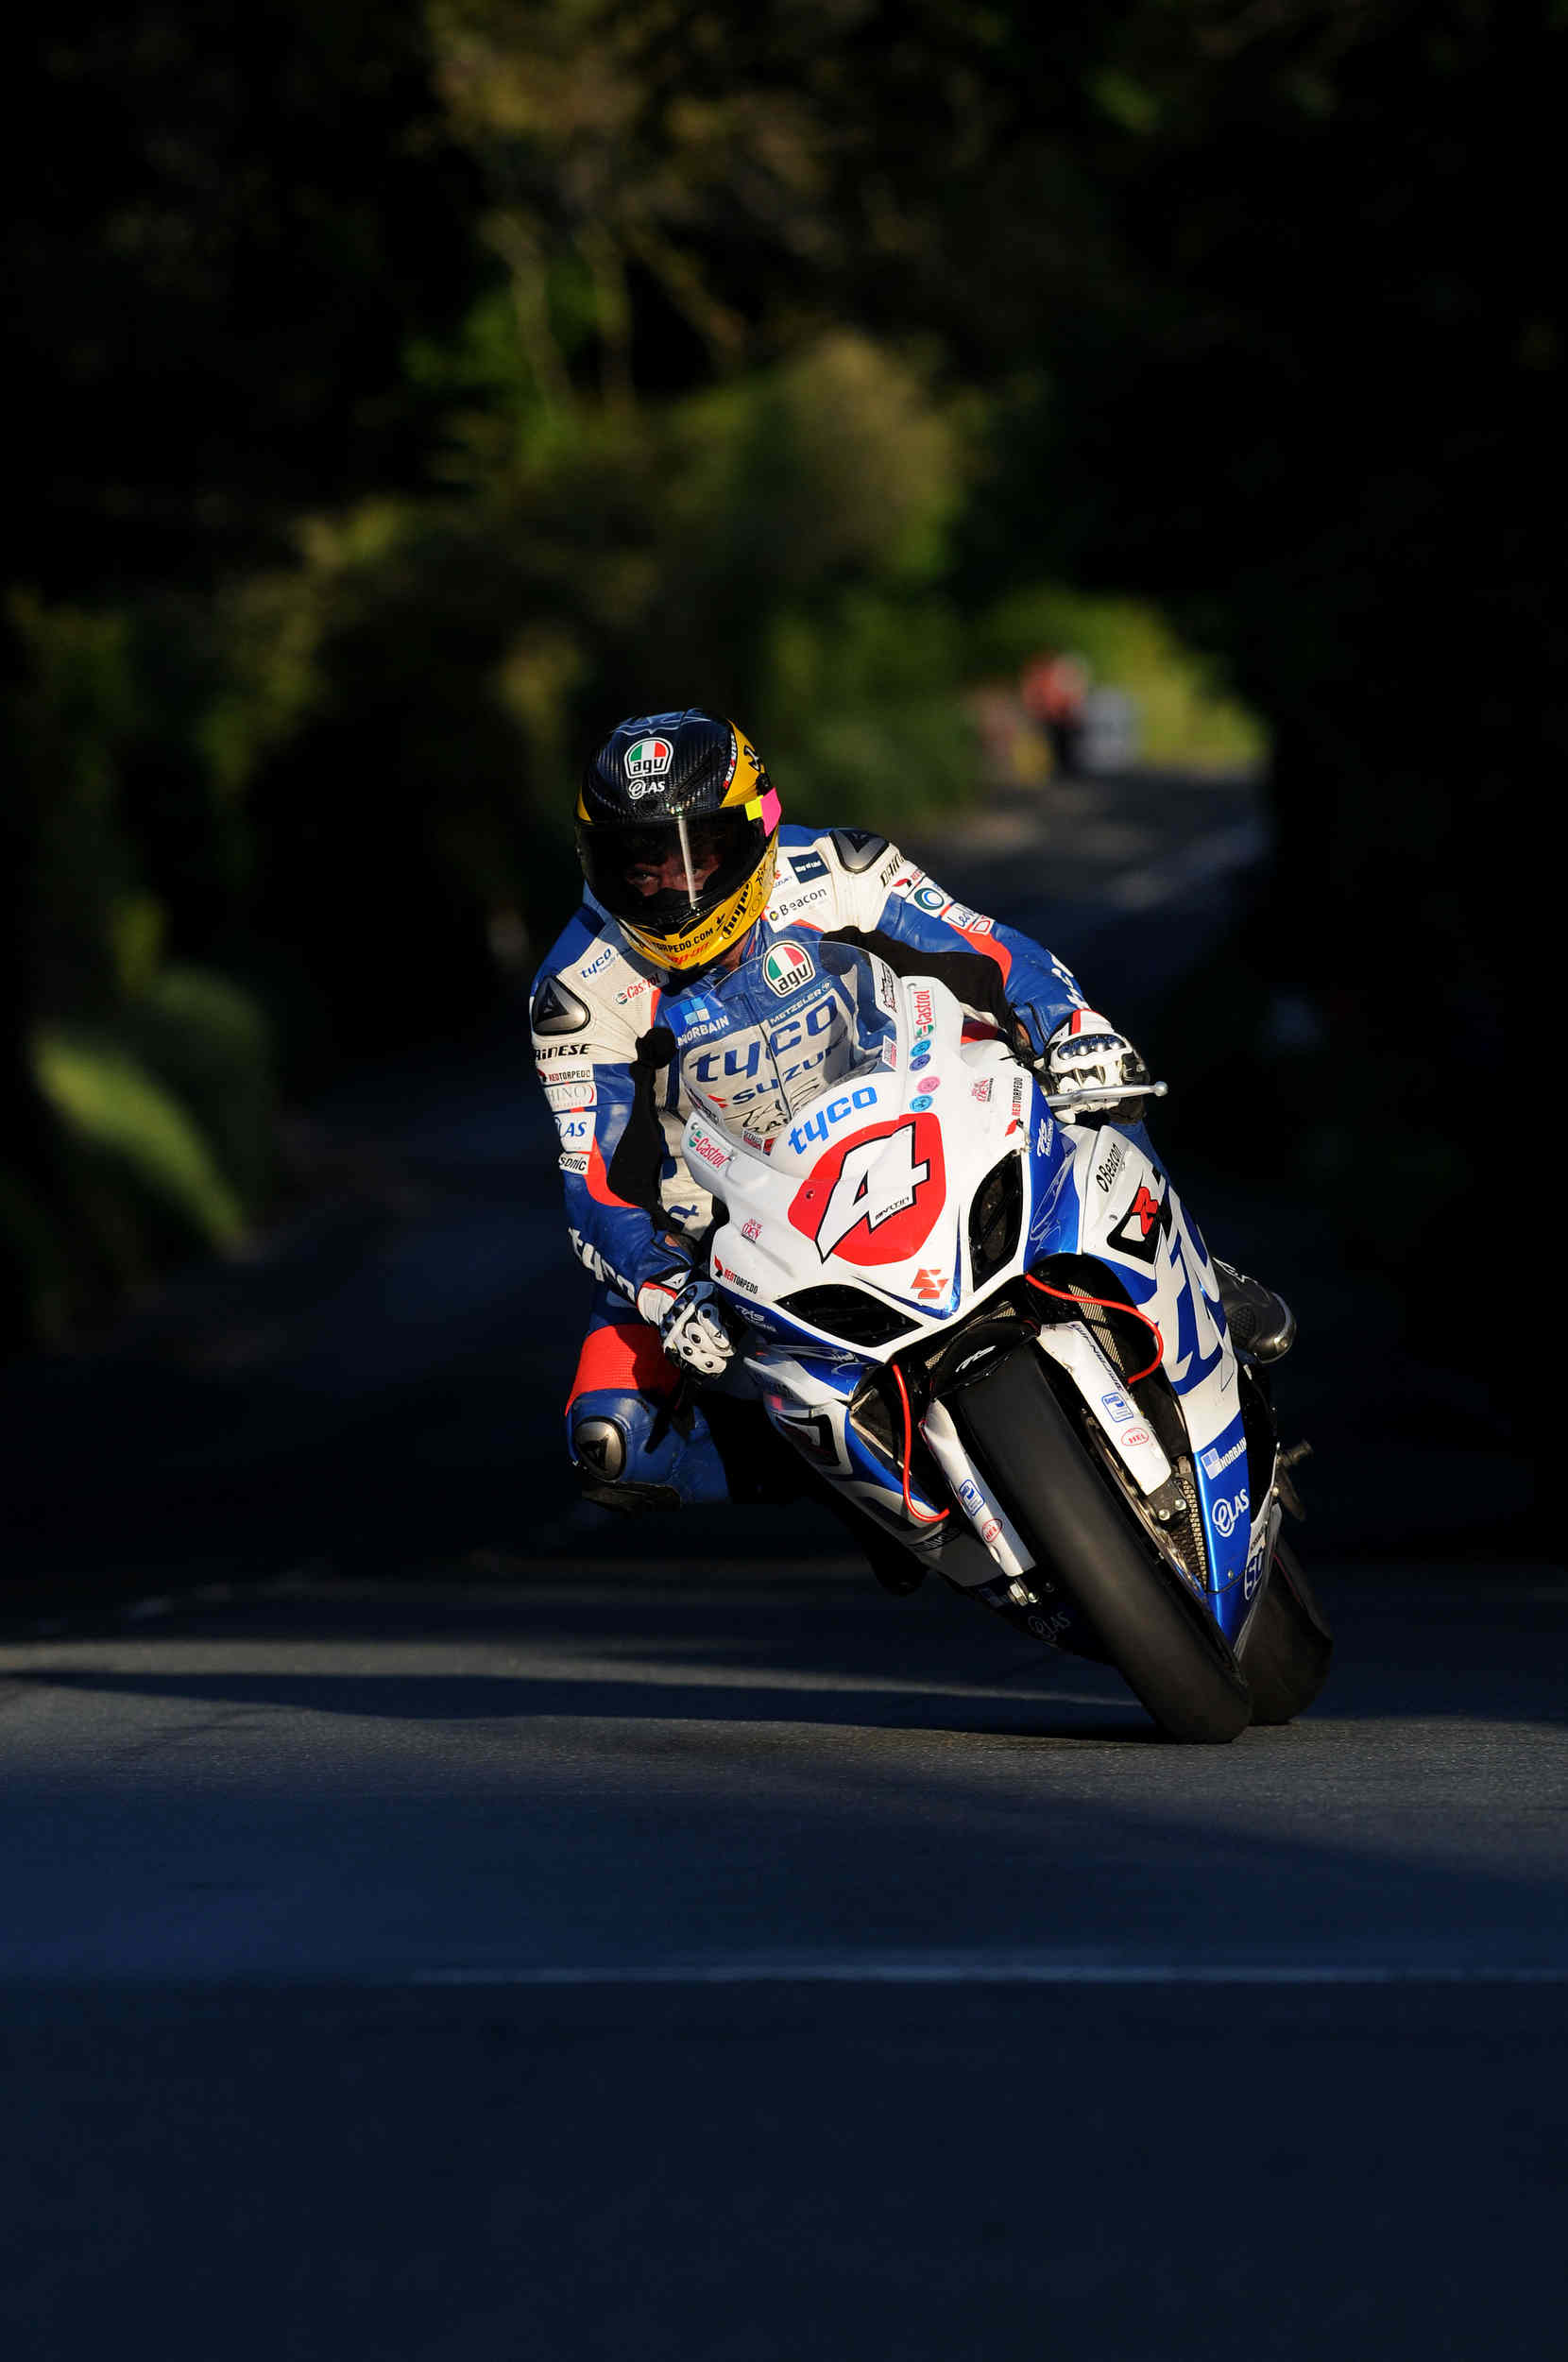 Evening qualifying at Ballacraine, TT 2012 - Guy Martin